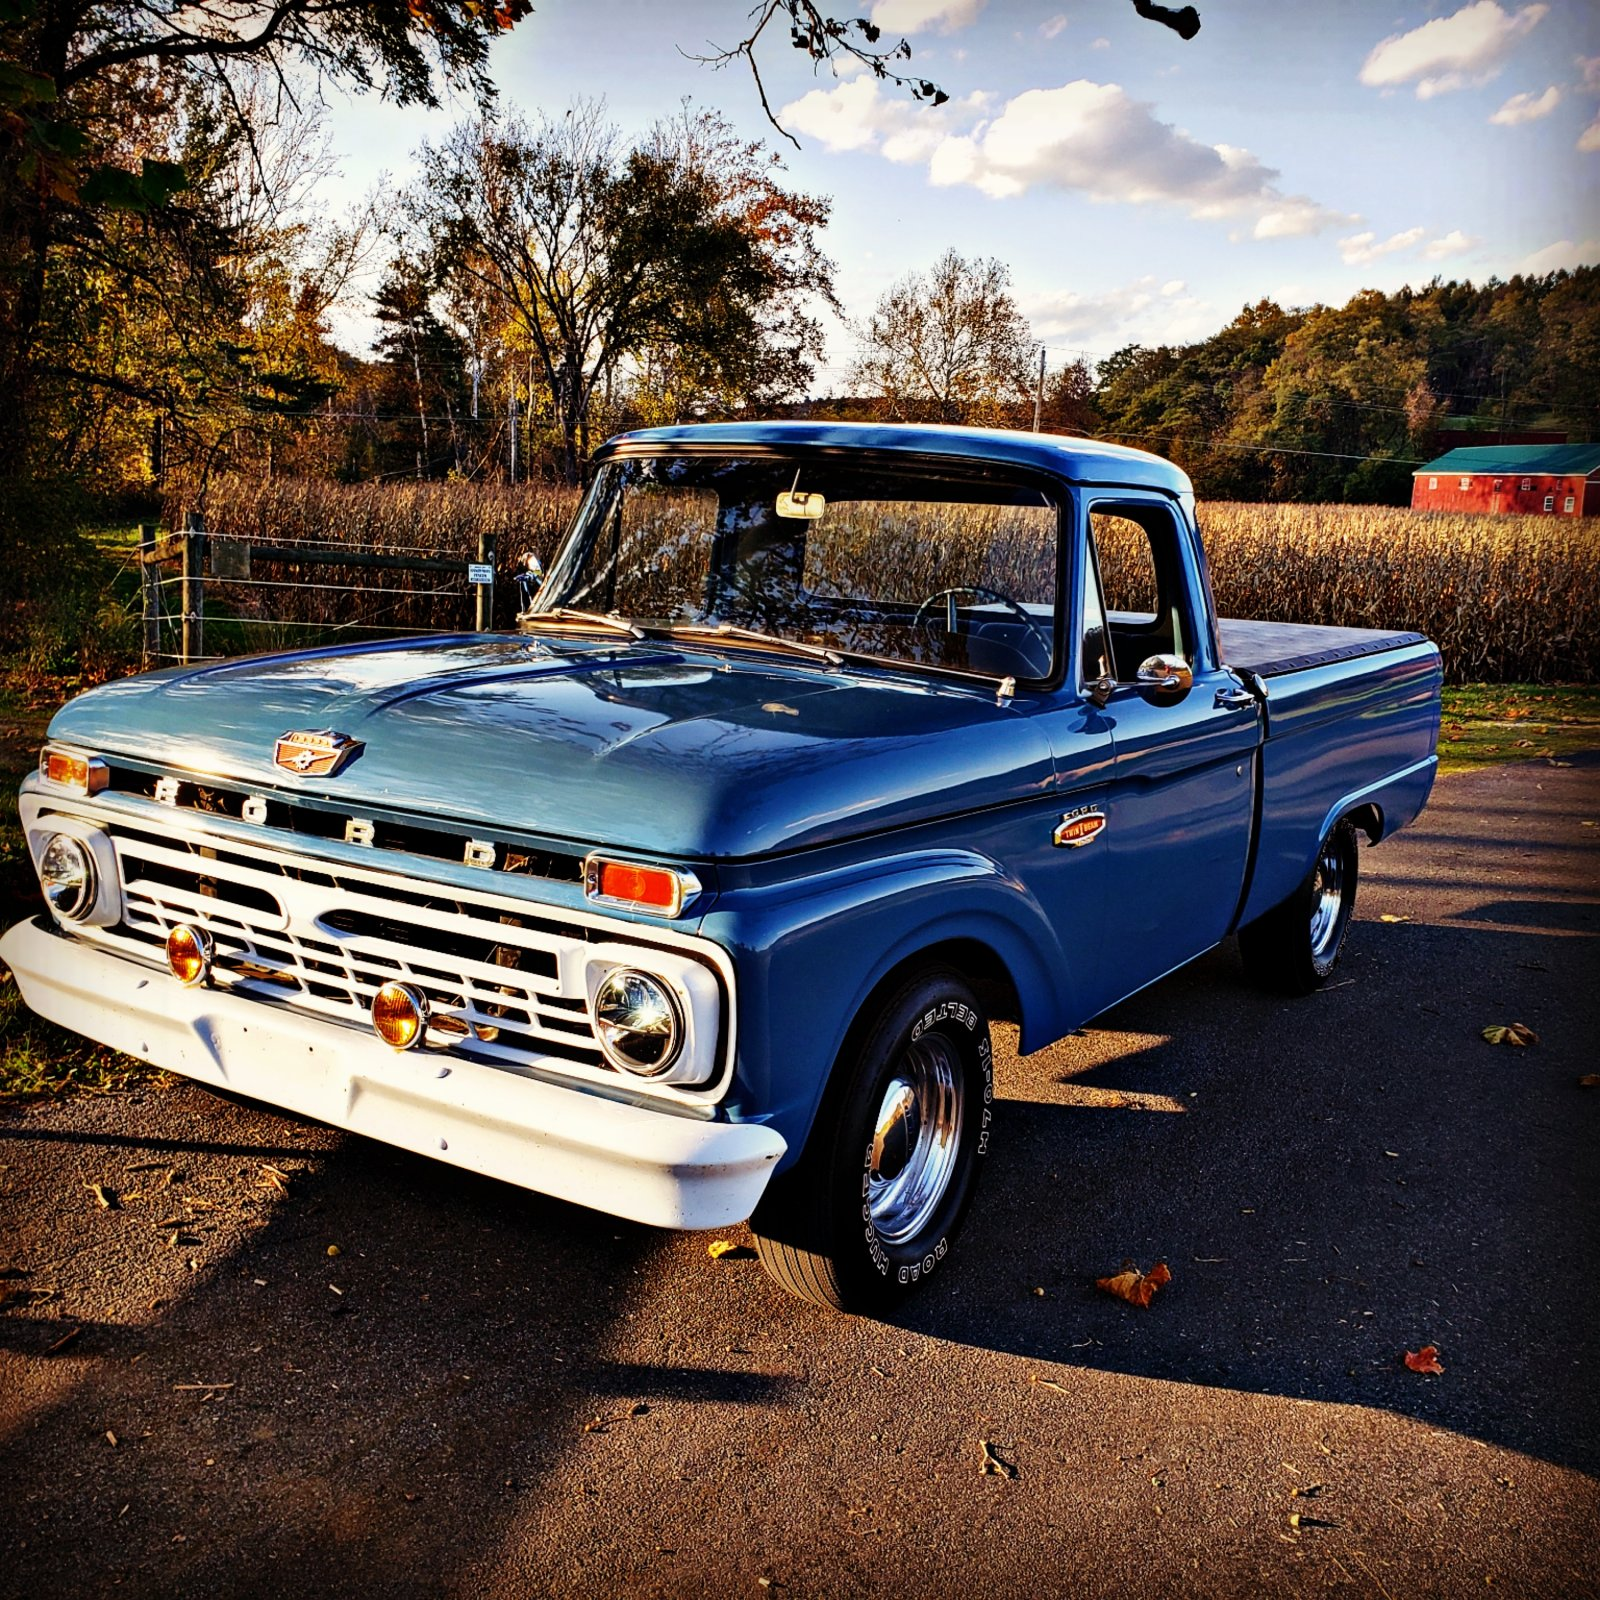 1966 Ford F100 Story About Truck Owner Chris F. 3.jpg